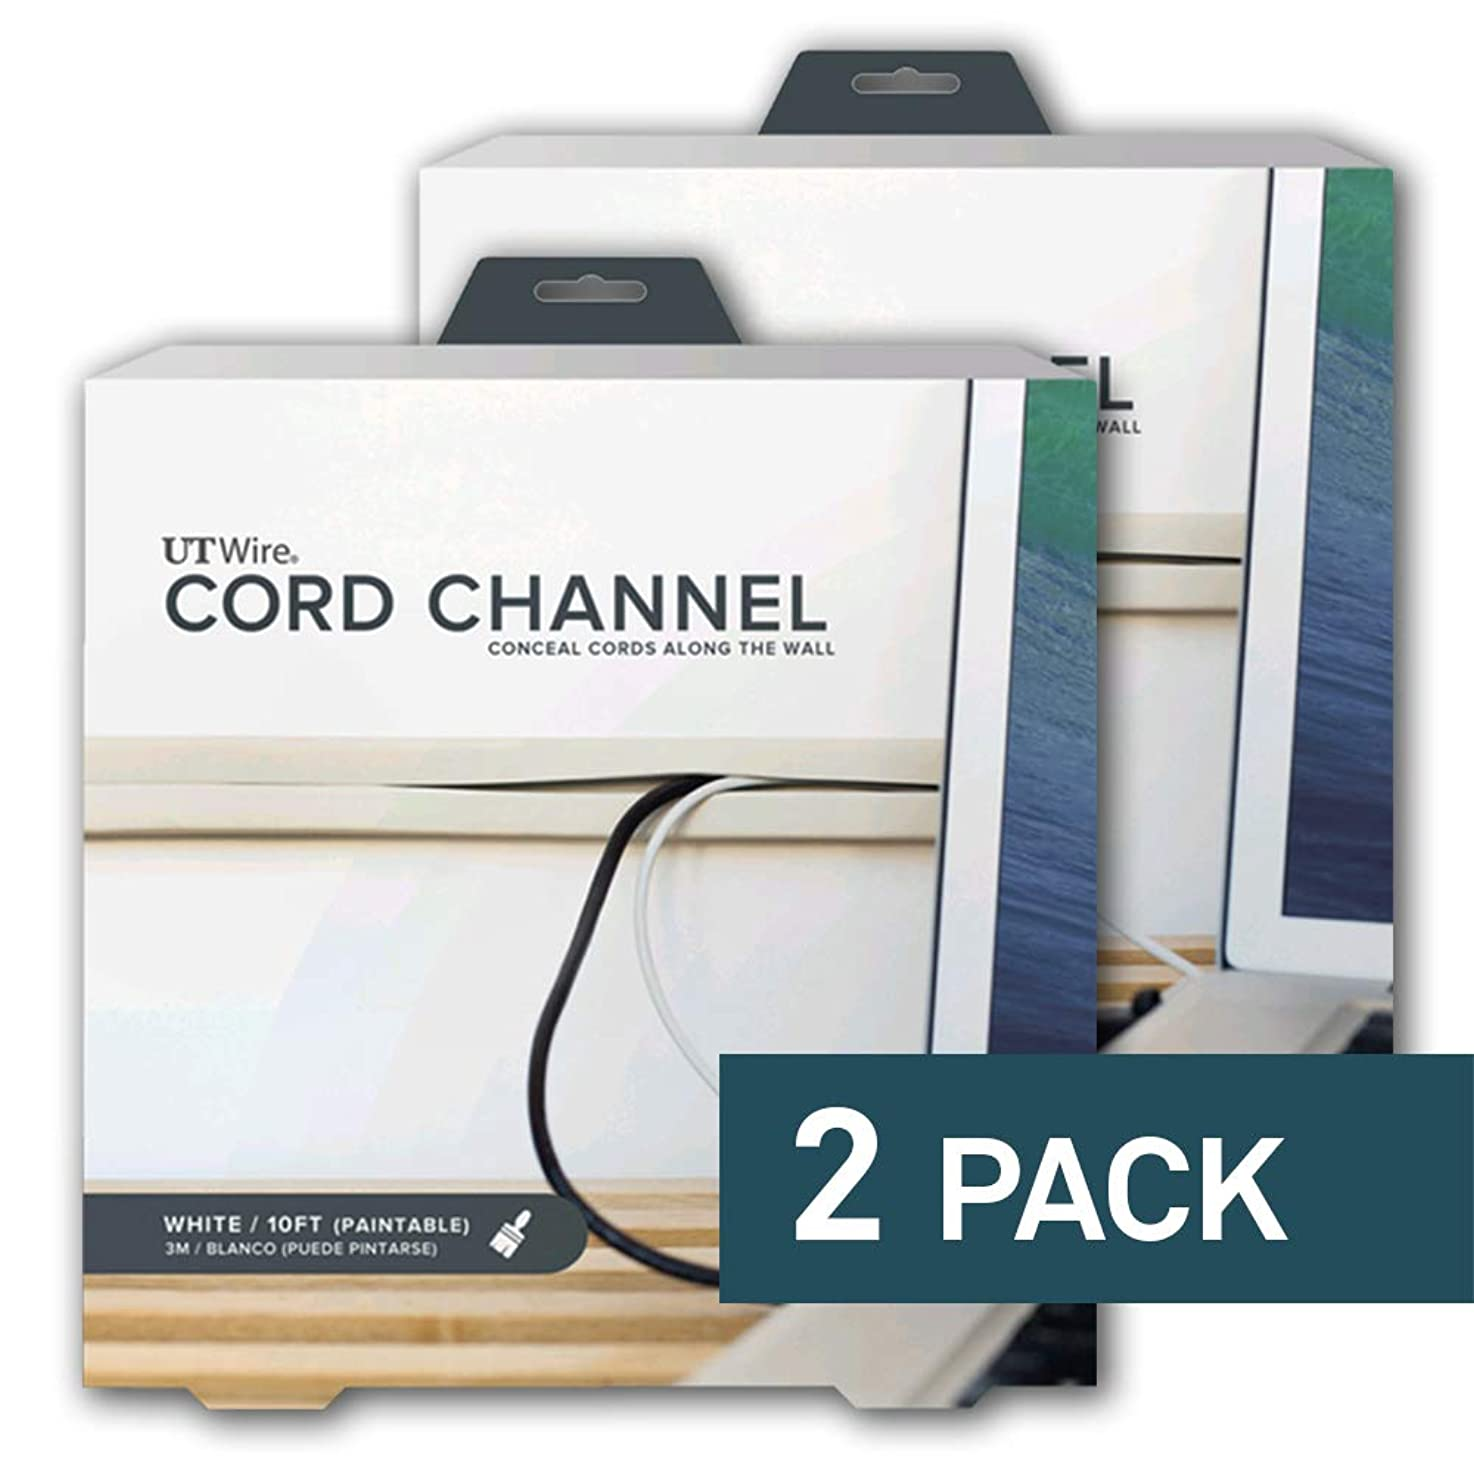 UT Wire - 10 Foot Flexible Cord Channel - (White) | 2 Pack